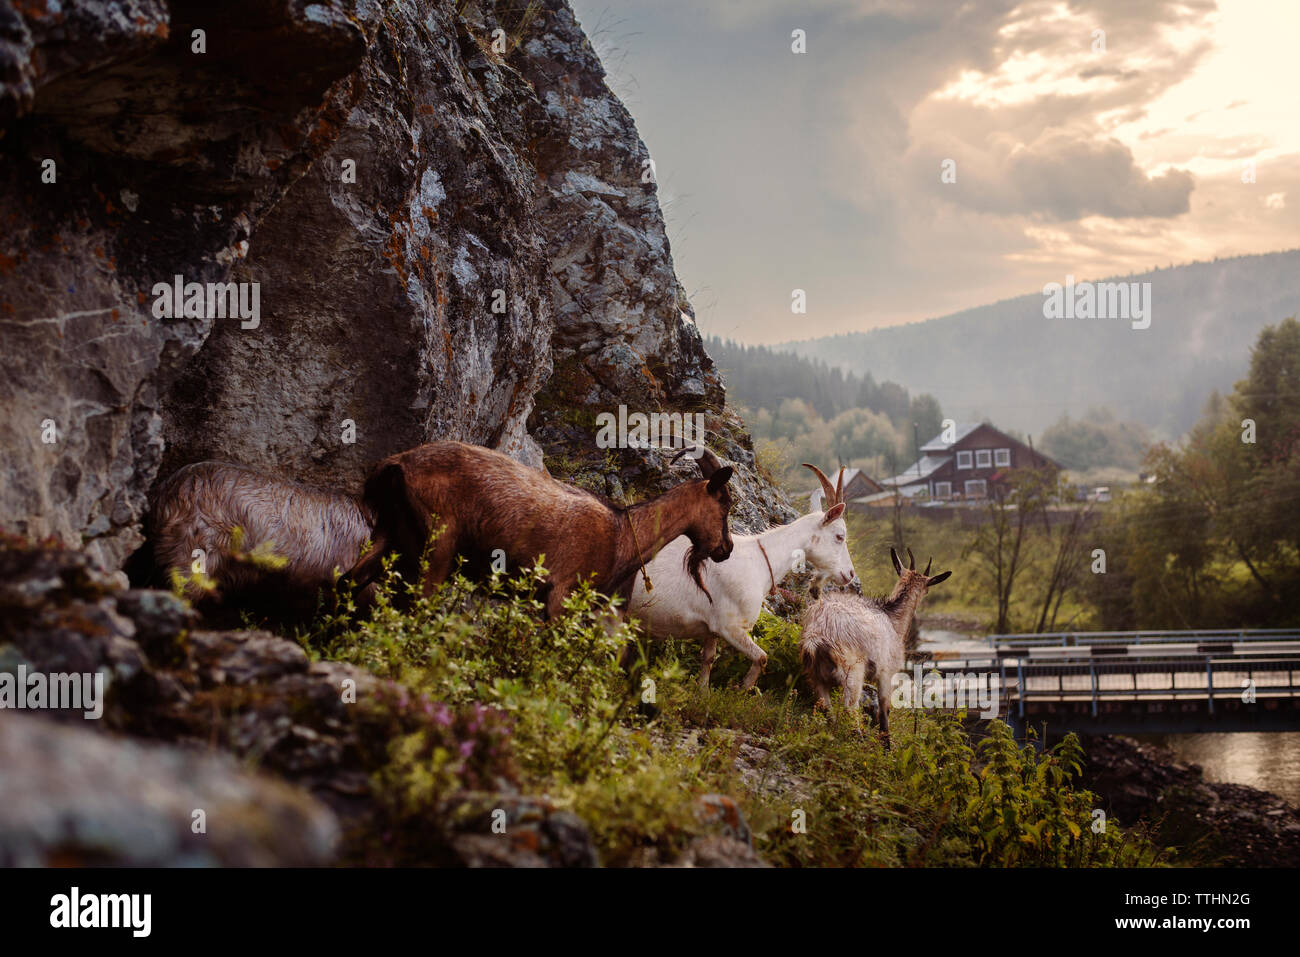 Goats by mountain against cloudy sky - Stock Image